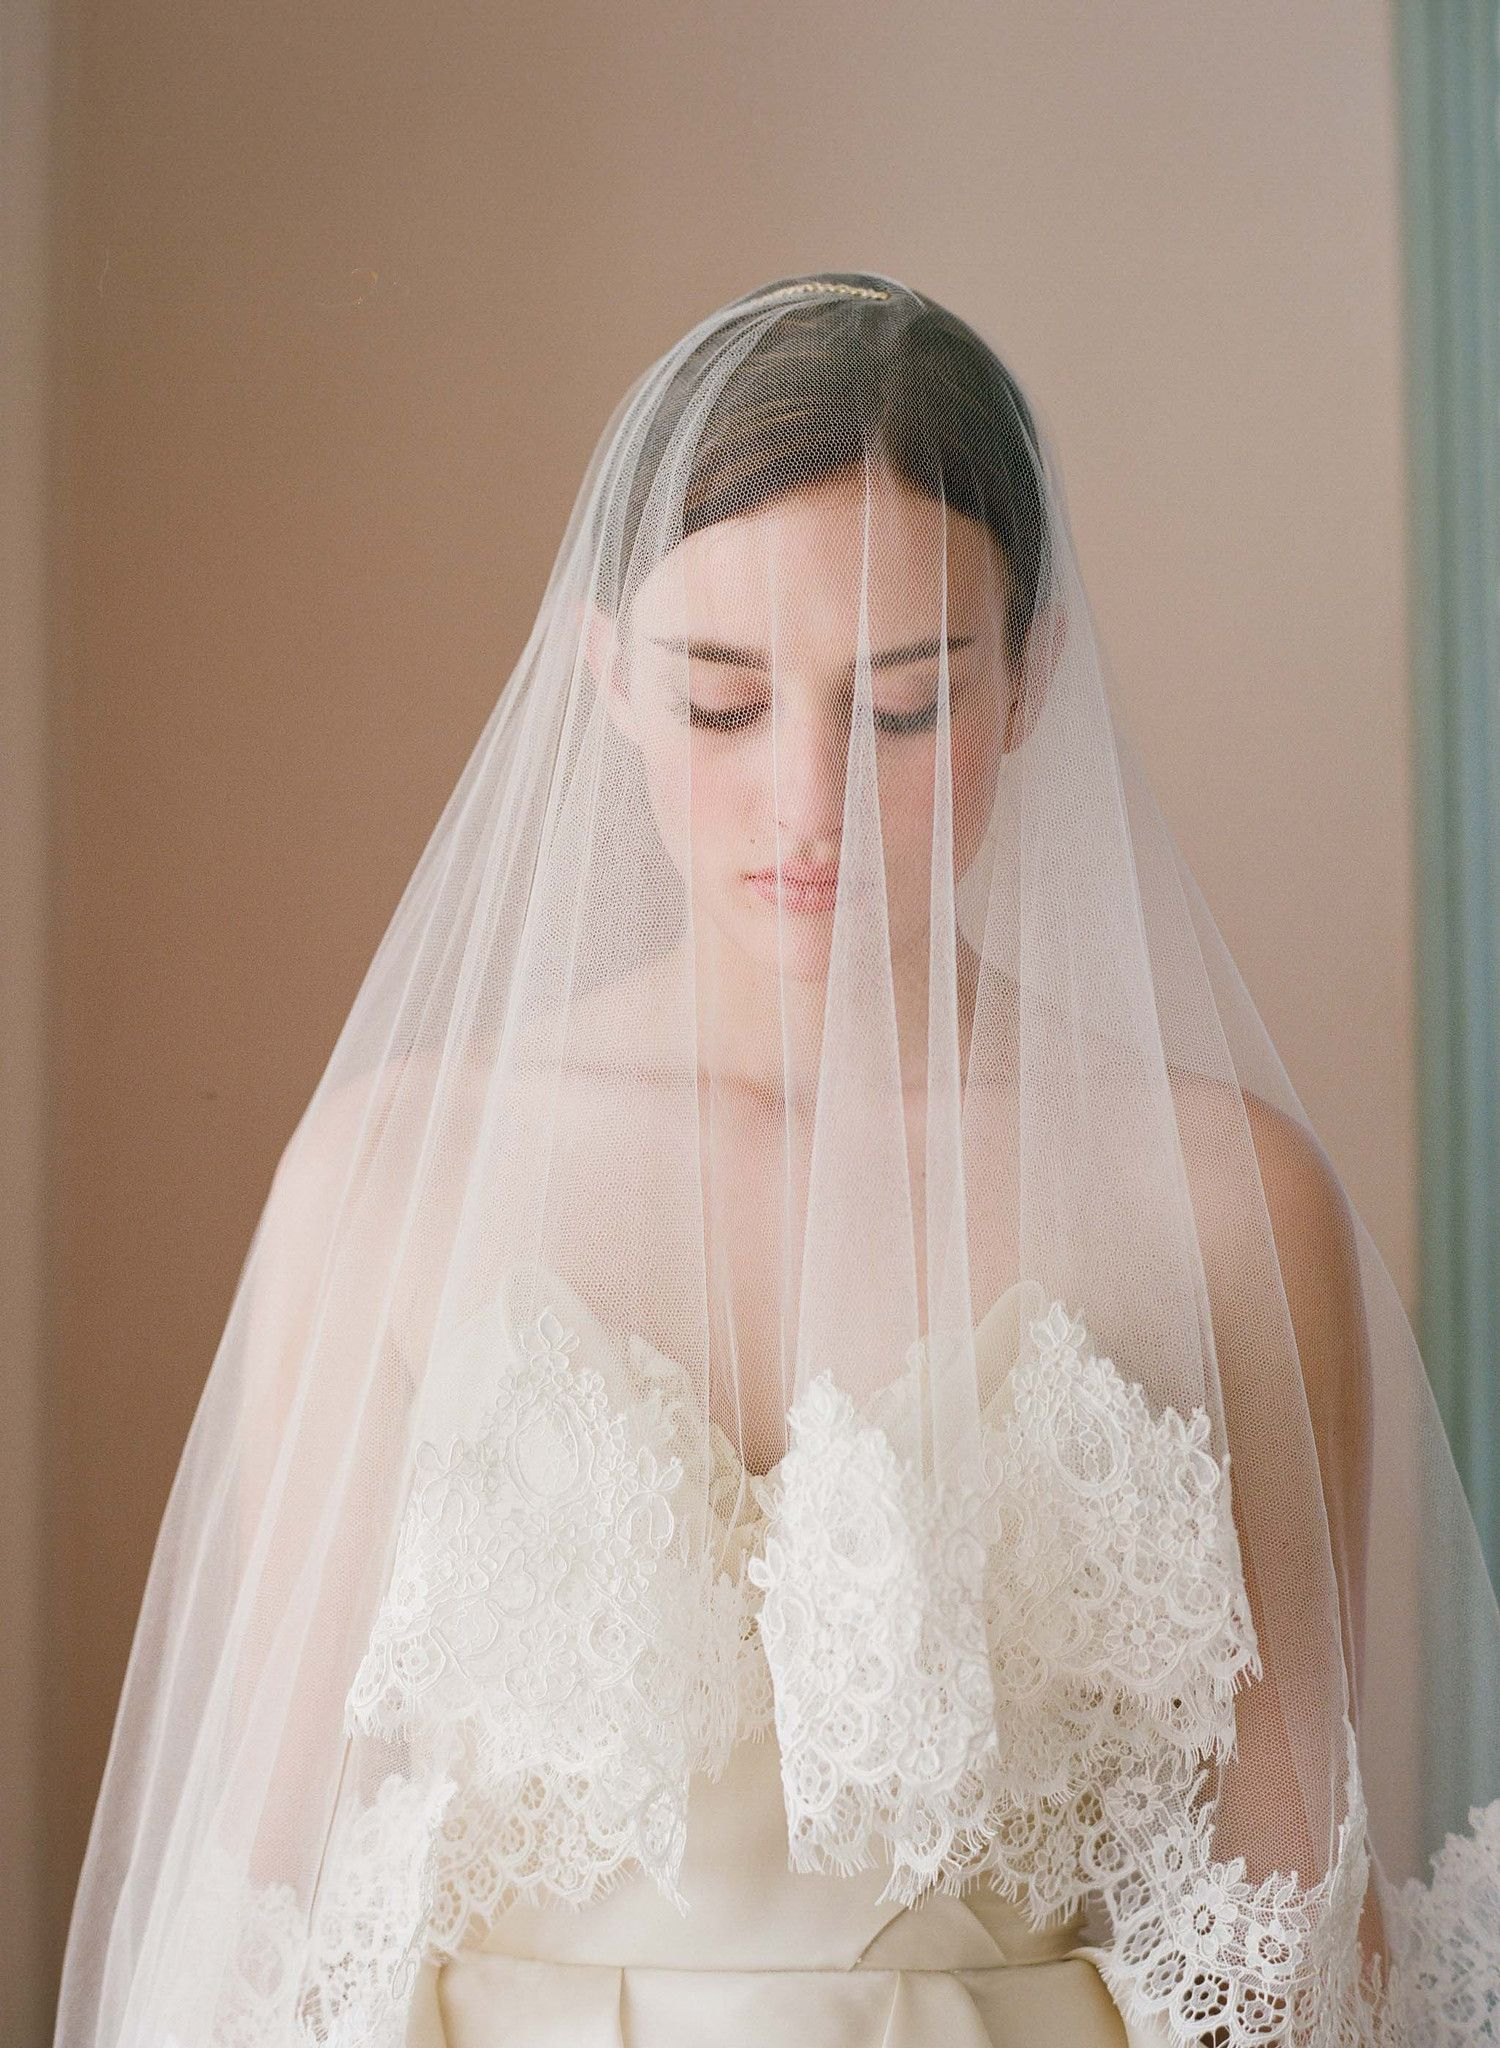 Silk tulle alencon lace trim veil - Style # 222 (made to order, tulle veils, twigs and honey, veils, view all) | Veils | Twigs & Honey ®, LLC